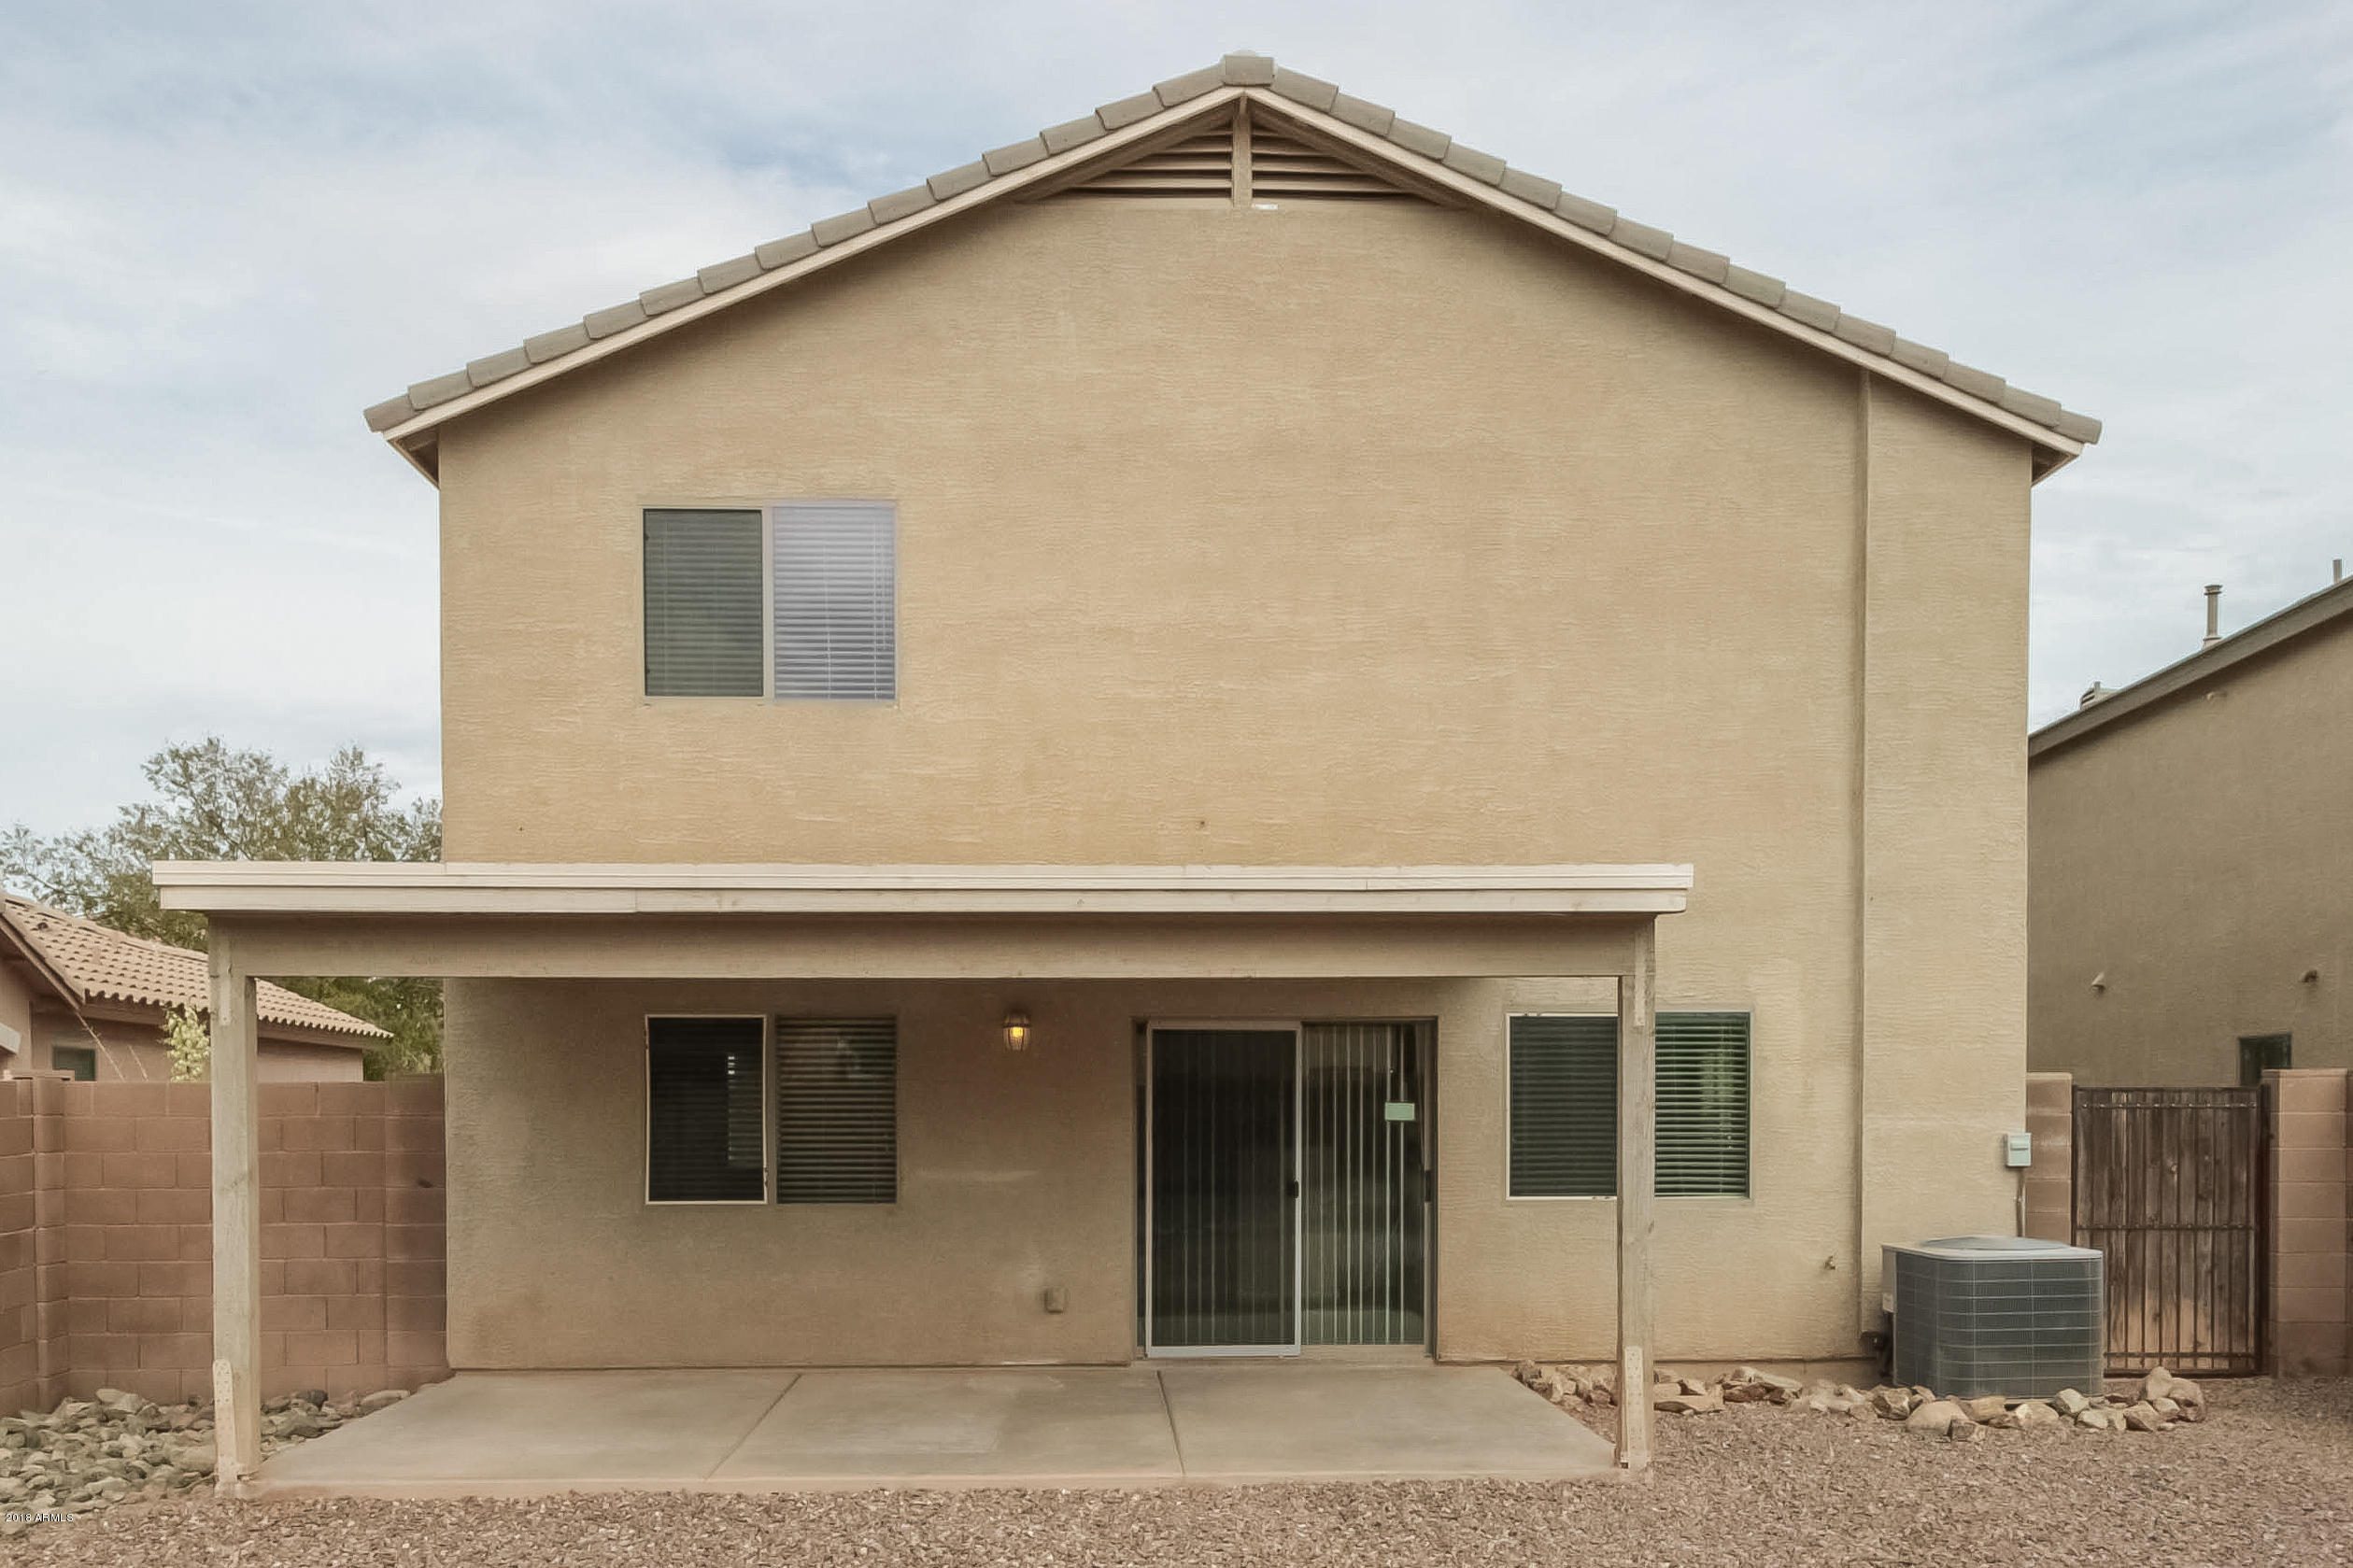 1435 E PRYOR Road San Tan Valley, AZ 85140 - MLS #: 5853963